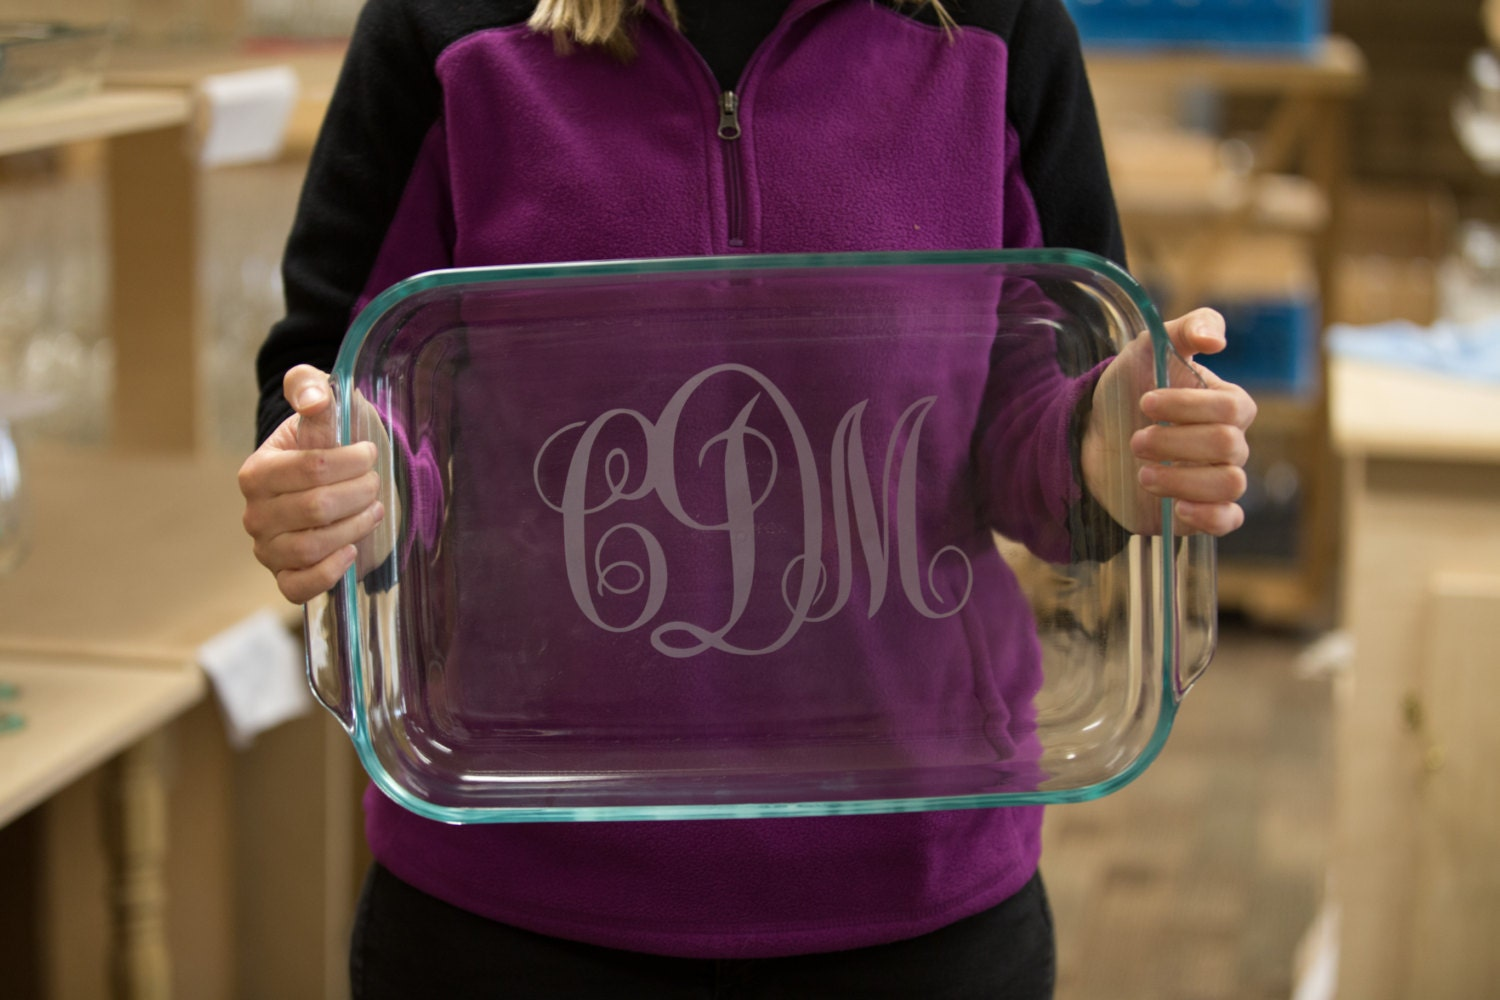 Christmas Gift For Bride To Be. Personalized Etched Casserole